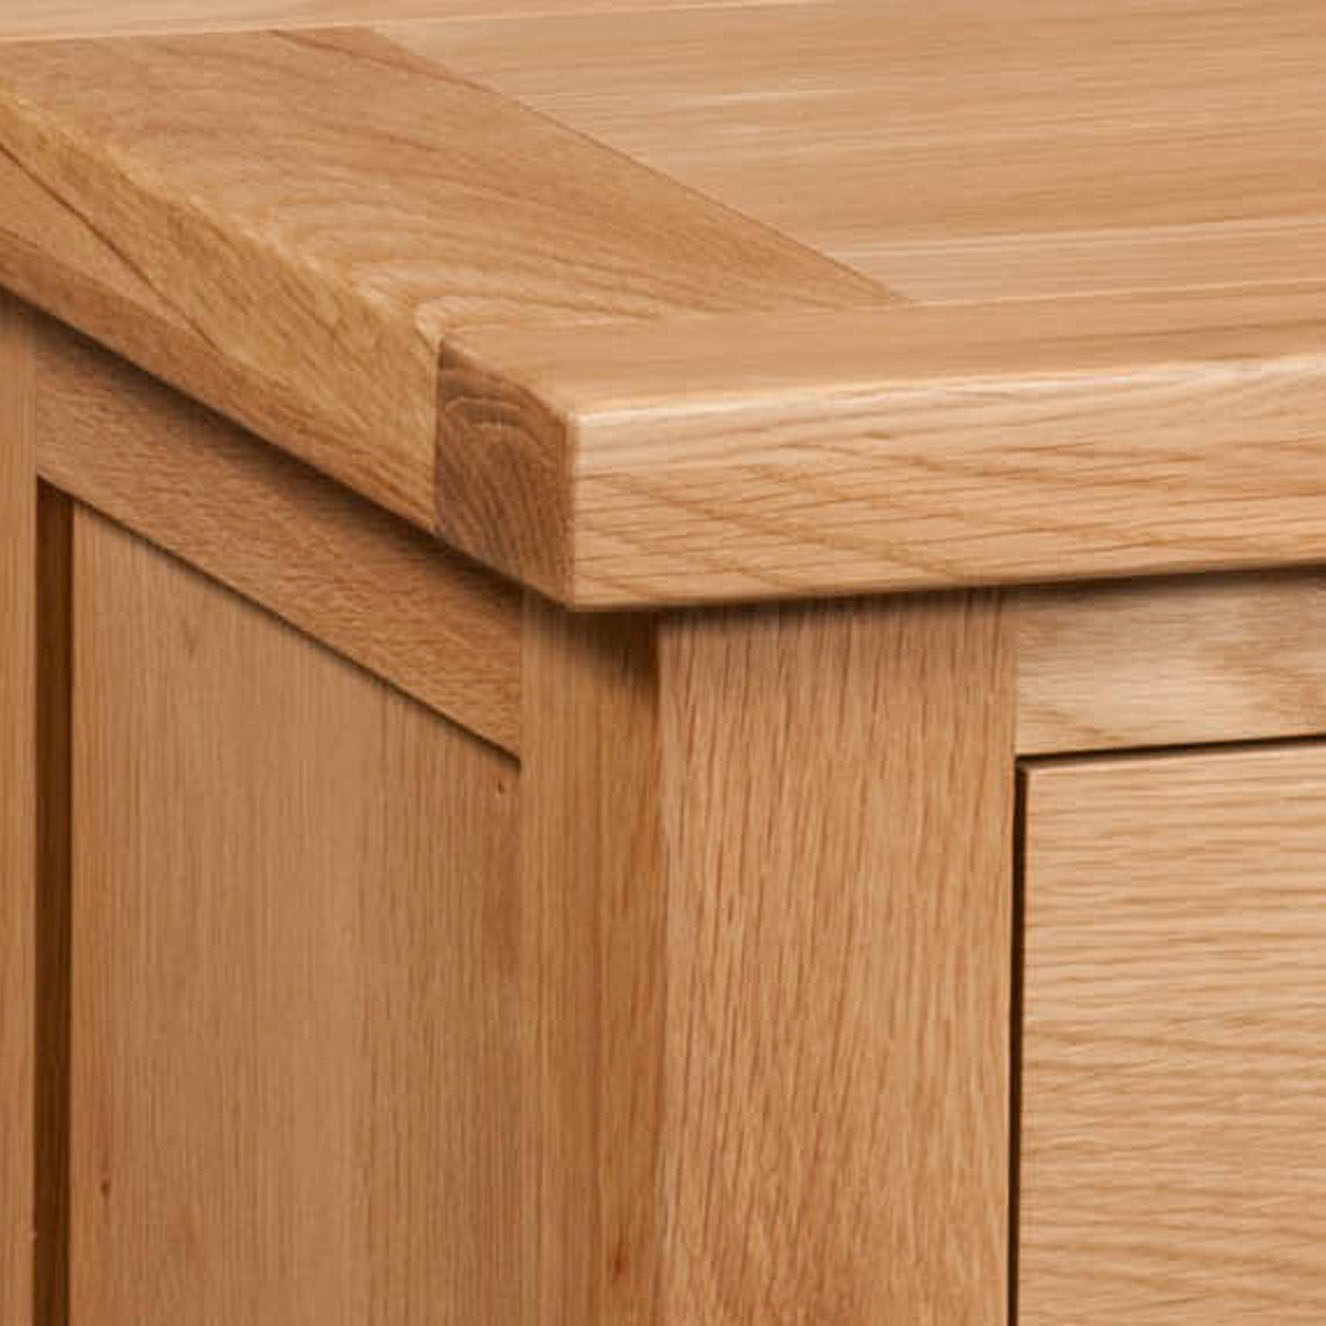 Maiden Oak Side Table with Drawer